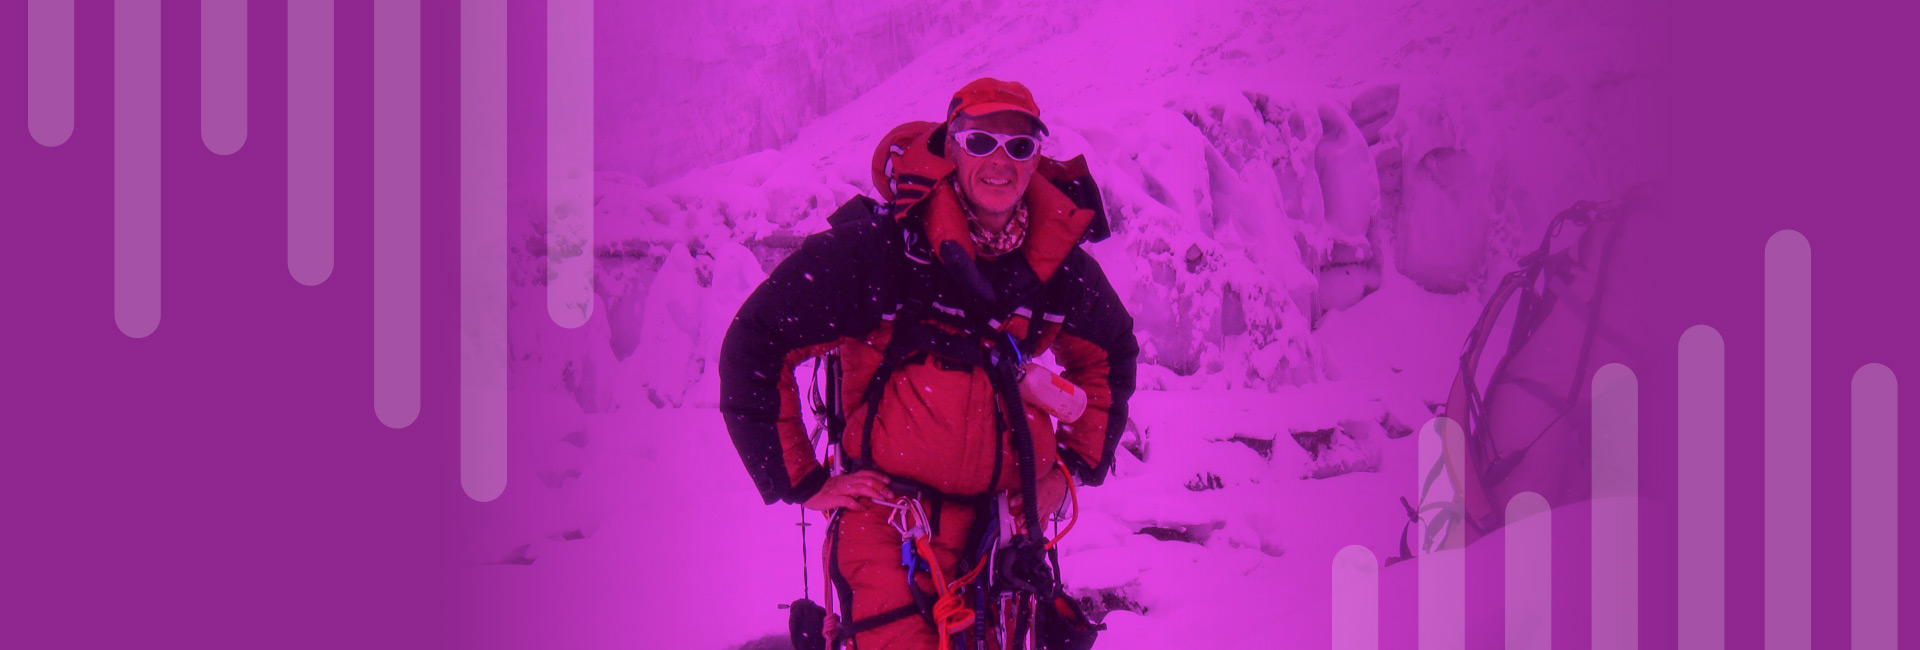 Breaking Through Barriers To Summit The World's 7 Highest Peaks!